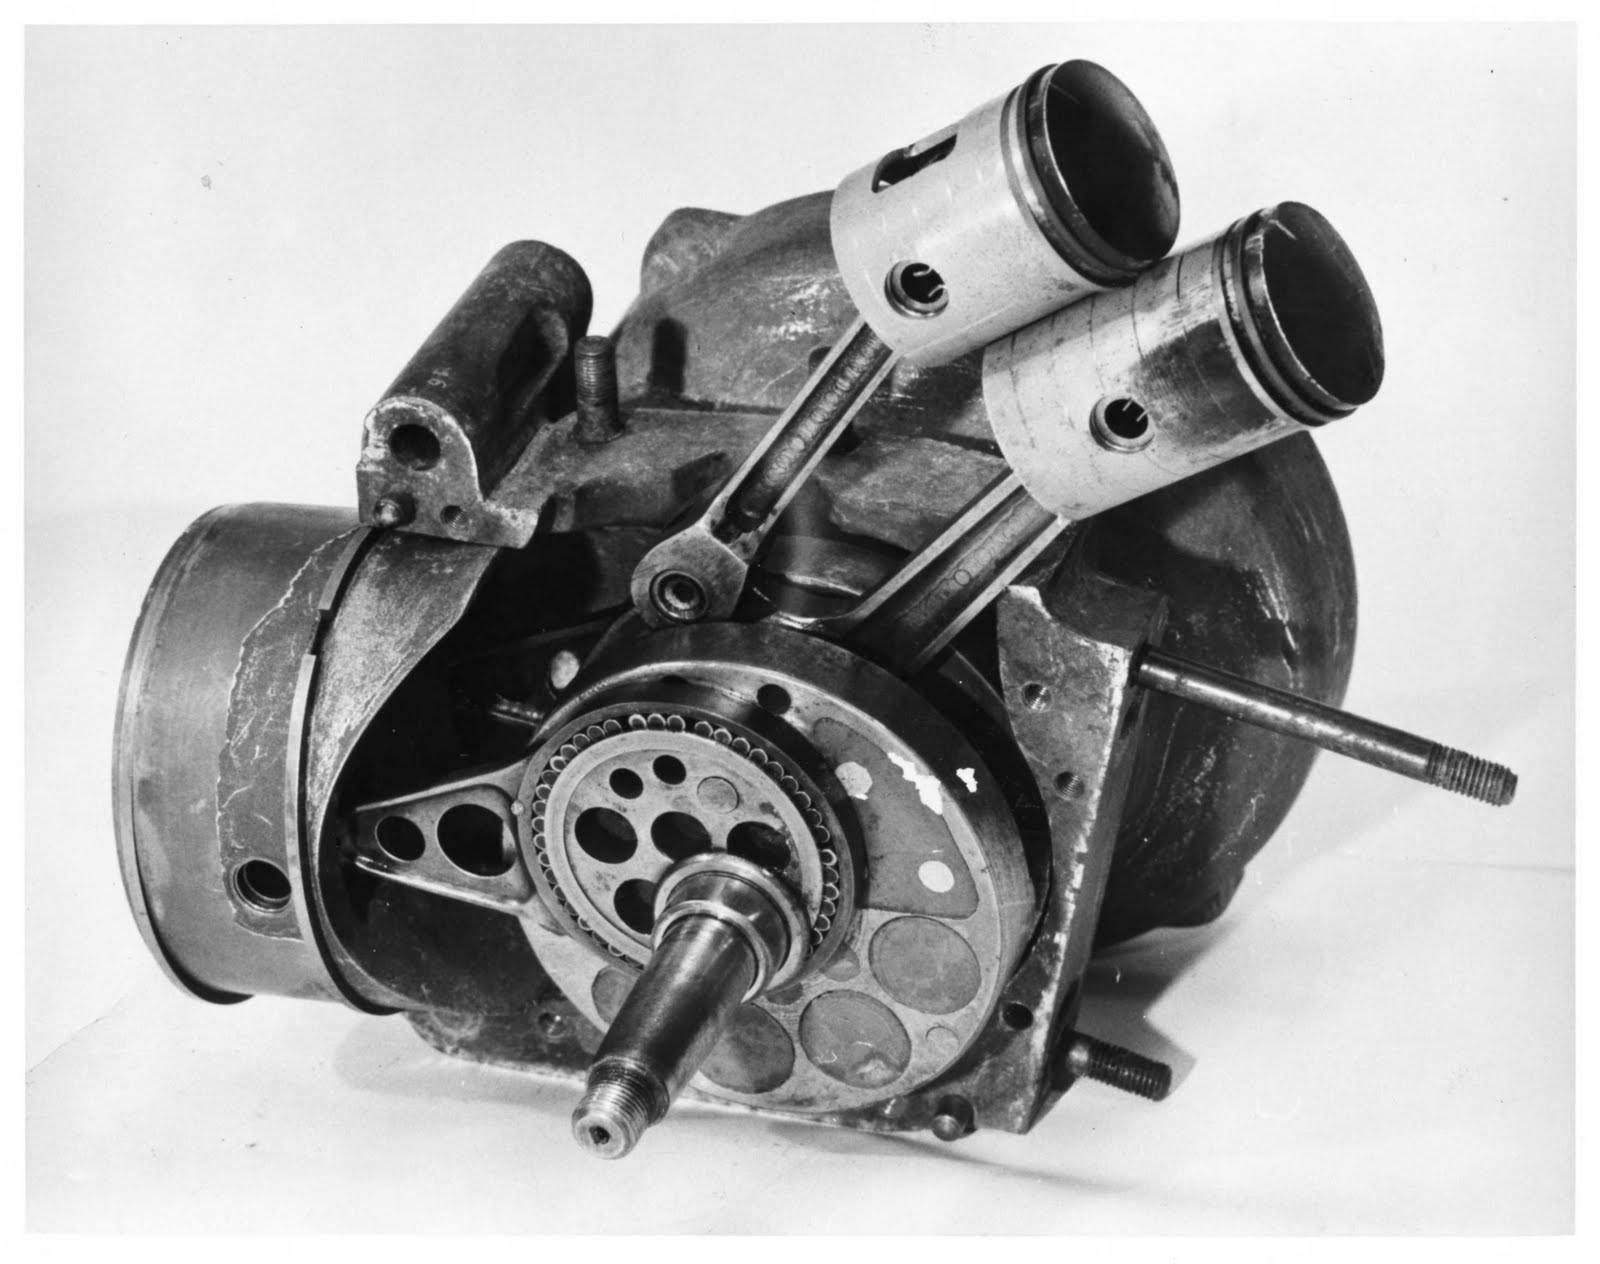 DKW supercharged two stroke engine